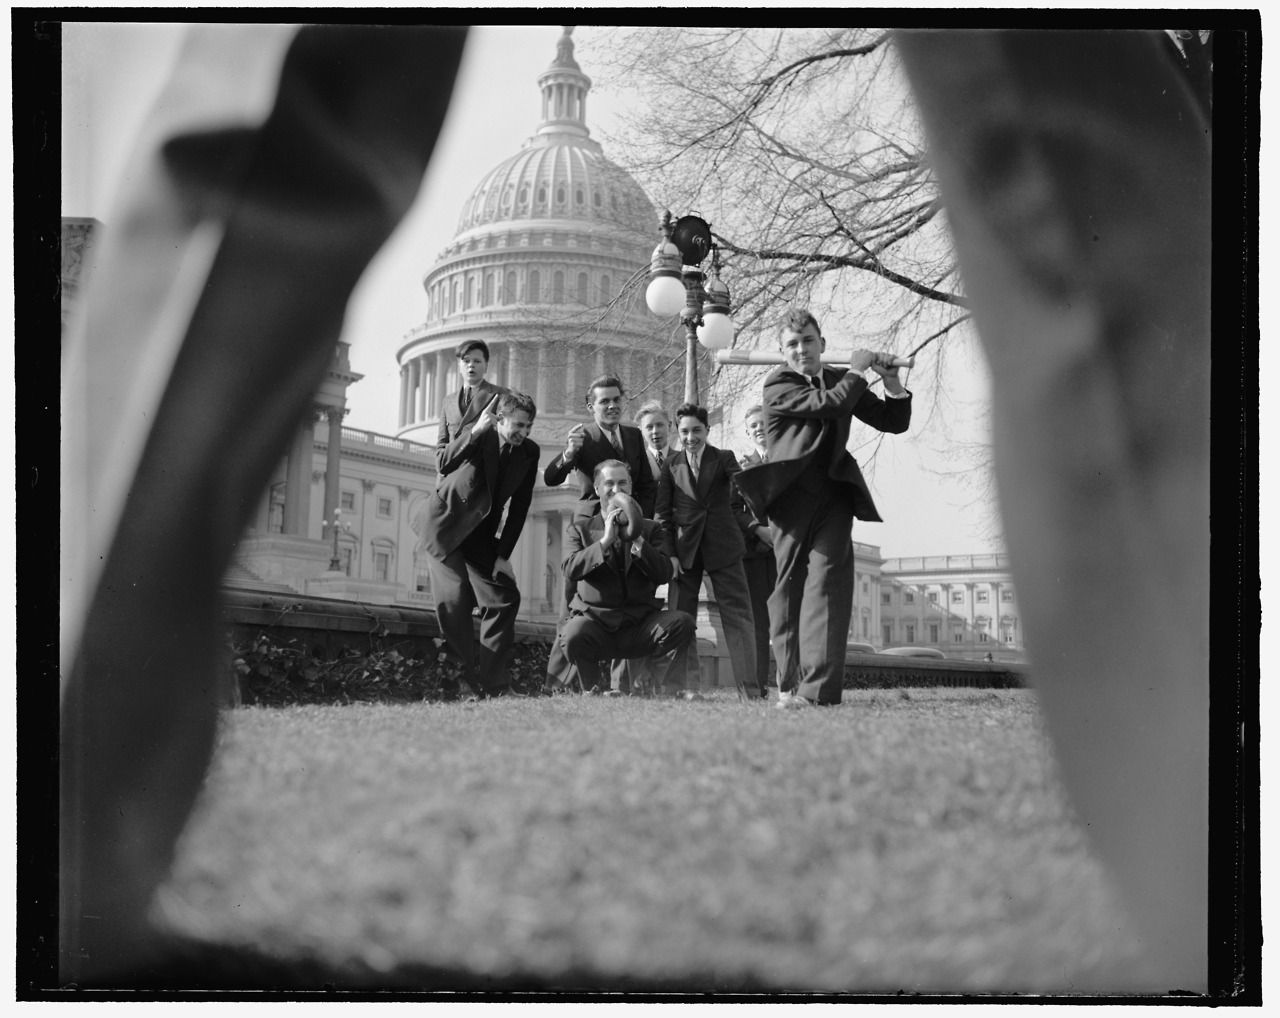 """ca. 1939. """"Baseball game with group of men and young boys (pages?) seen through legs of pitcher, with U.S. Capitol in background, Washington, D.C.""""Harris & Ewing Collection, Library of Congress."""